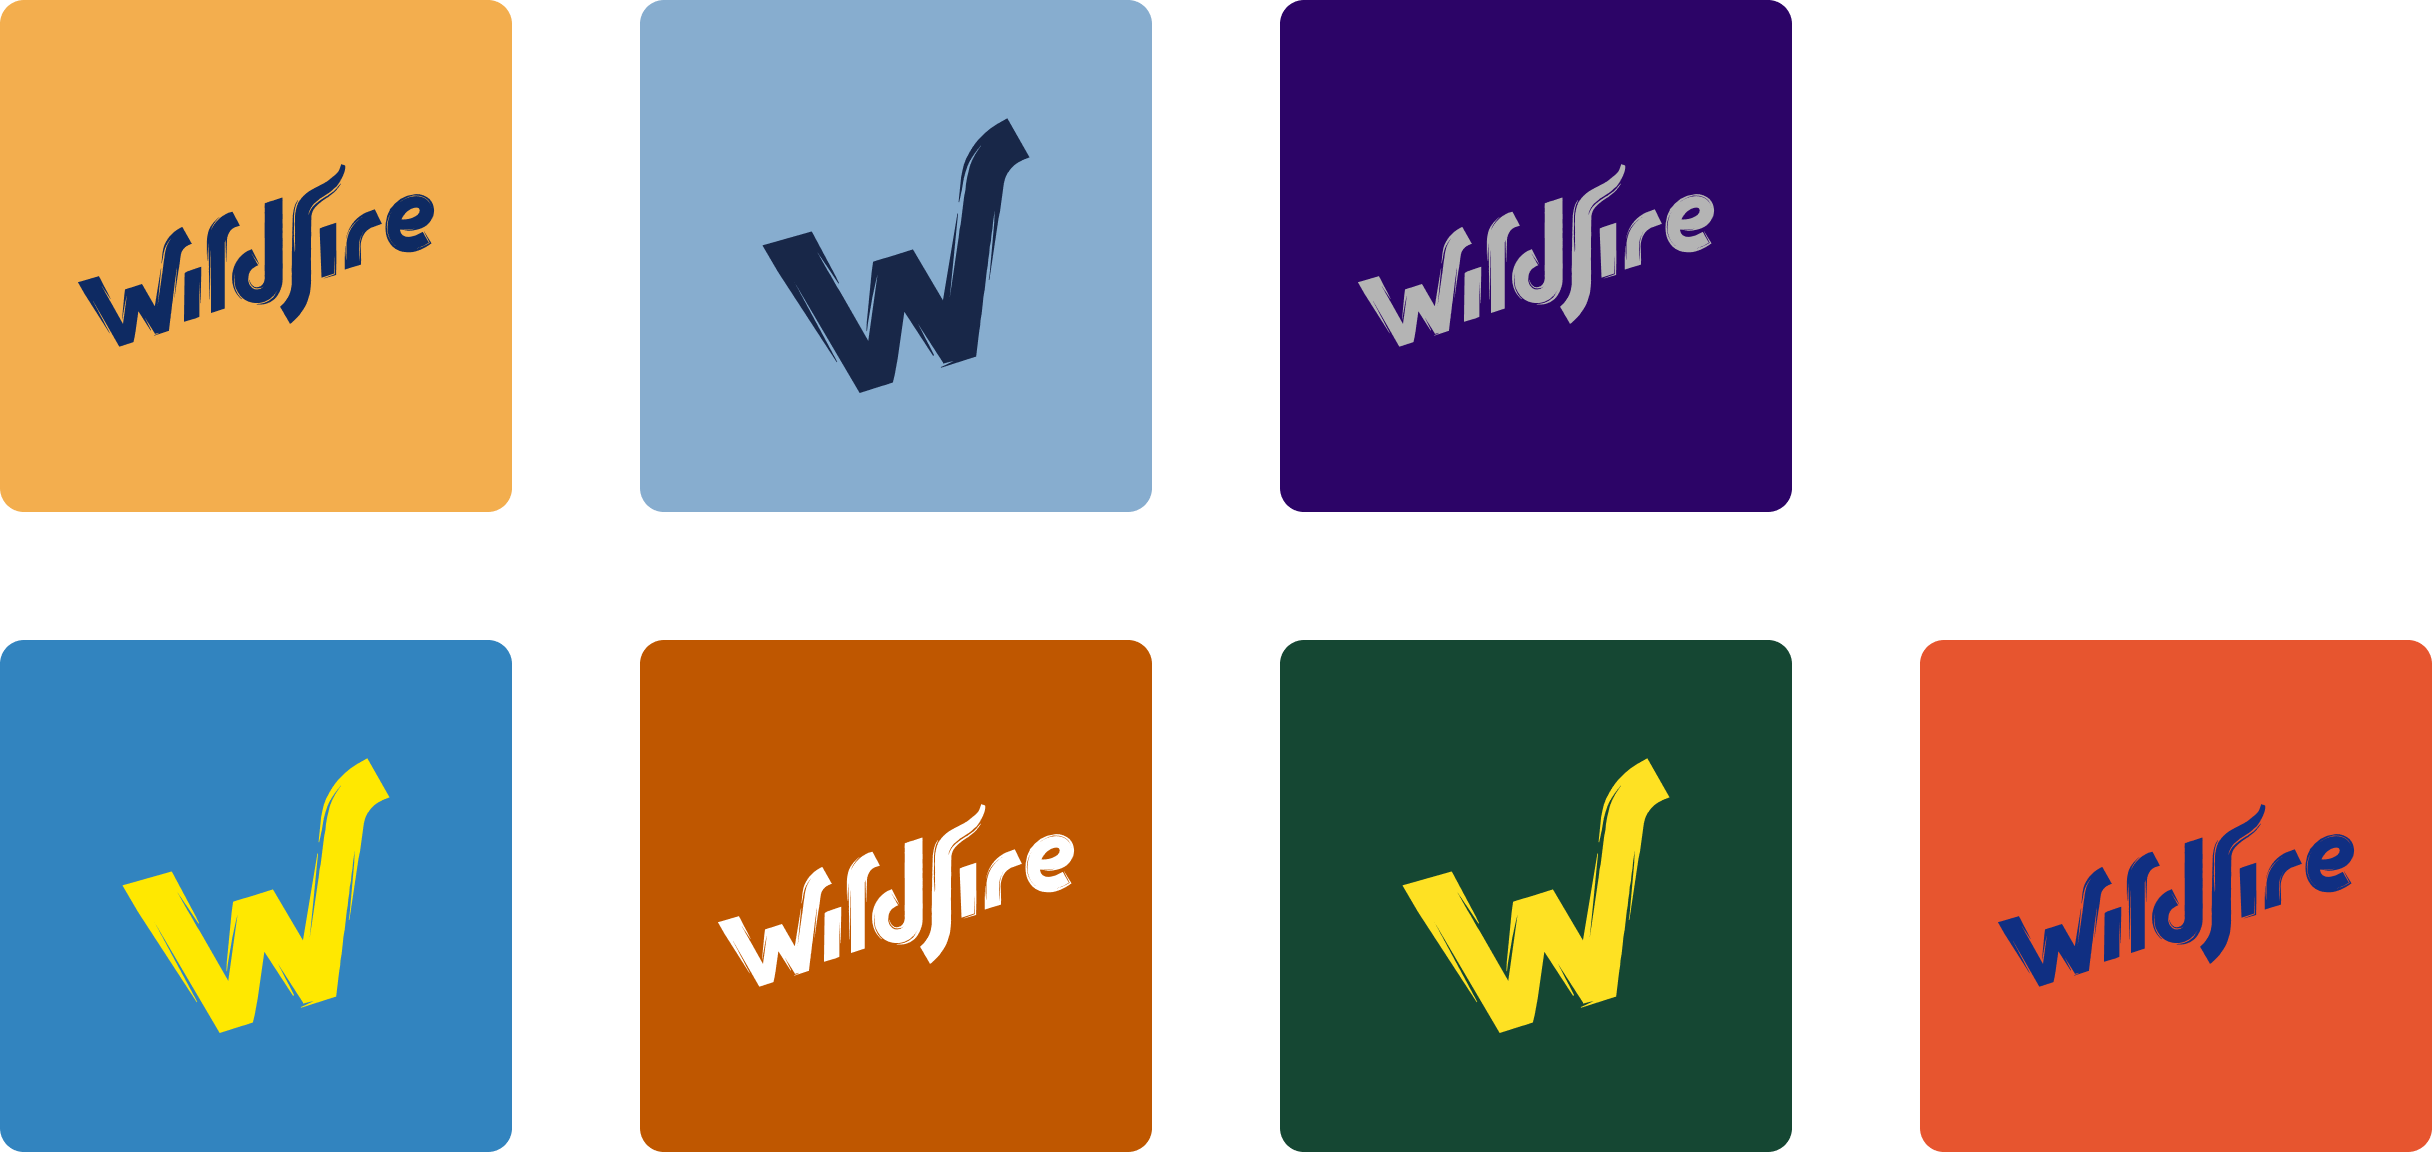 Wildfire Logos in campus colors